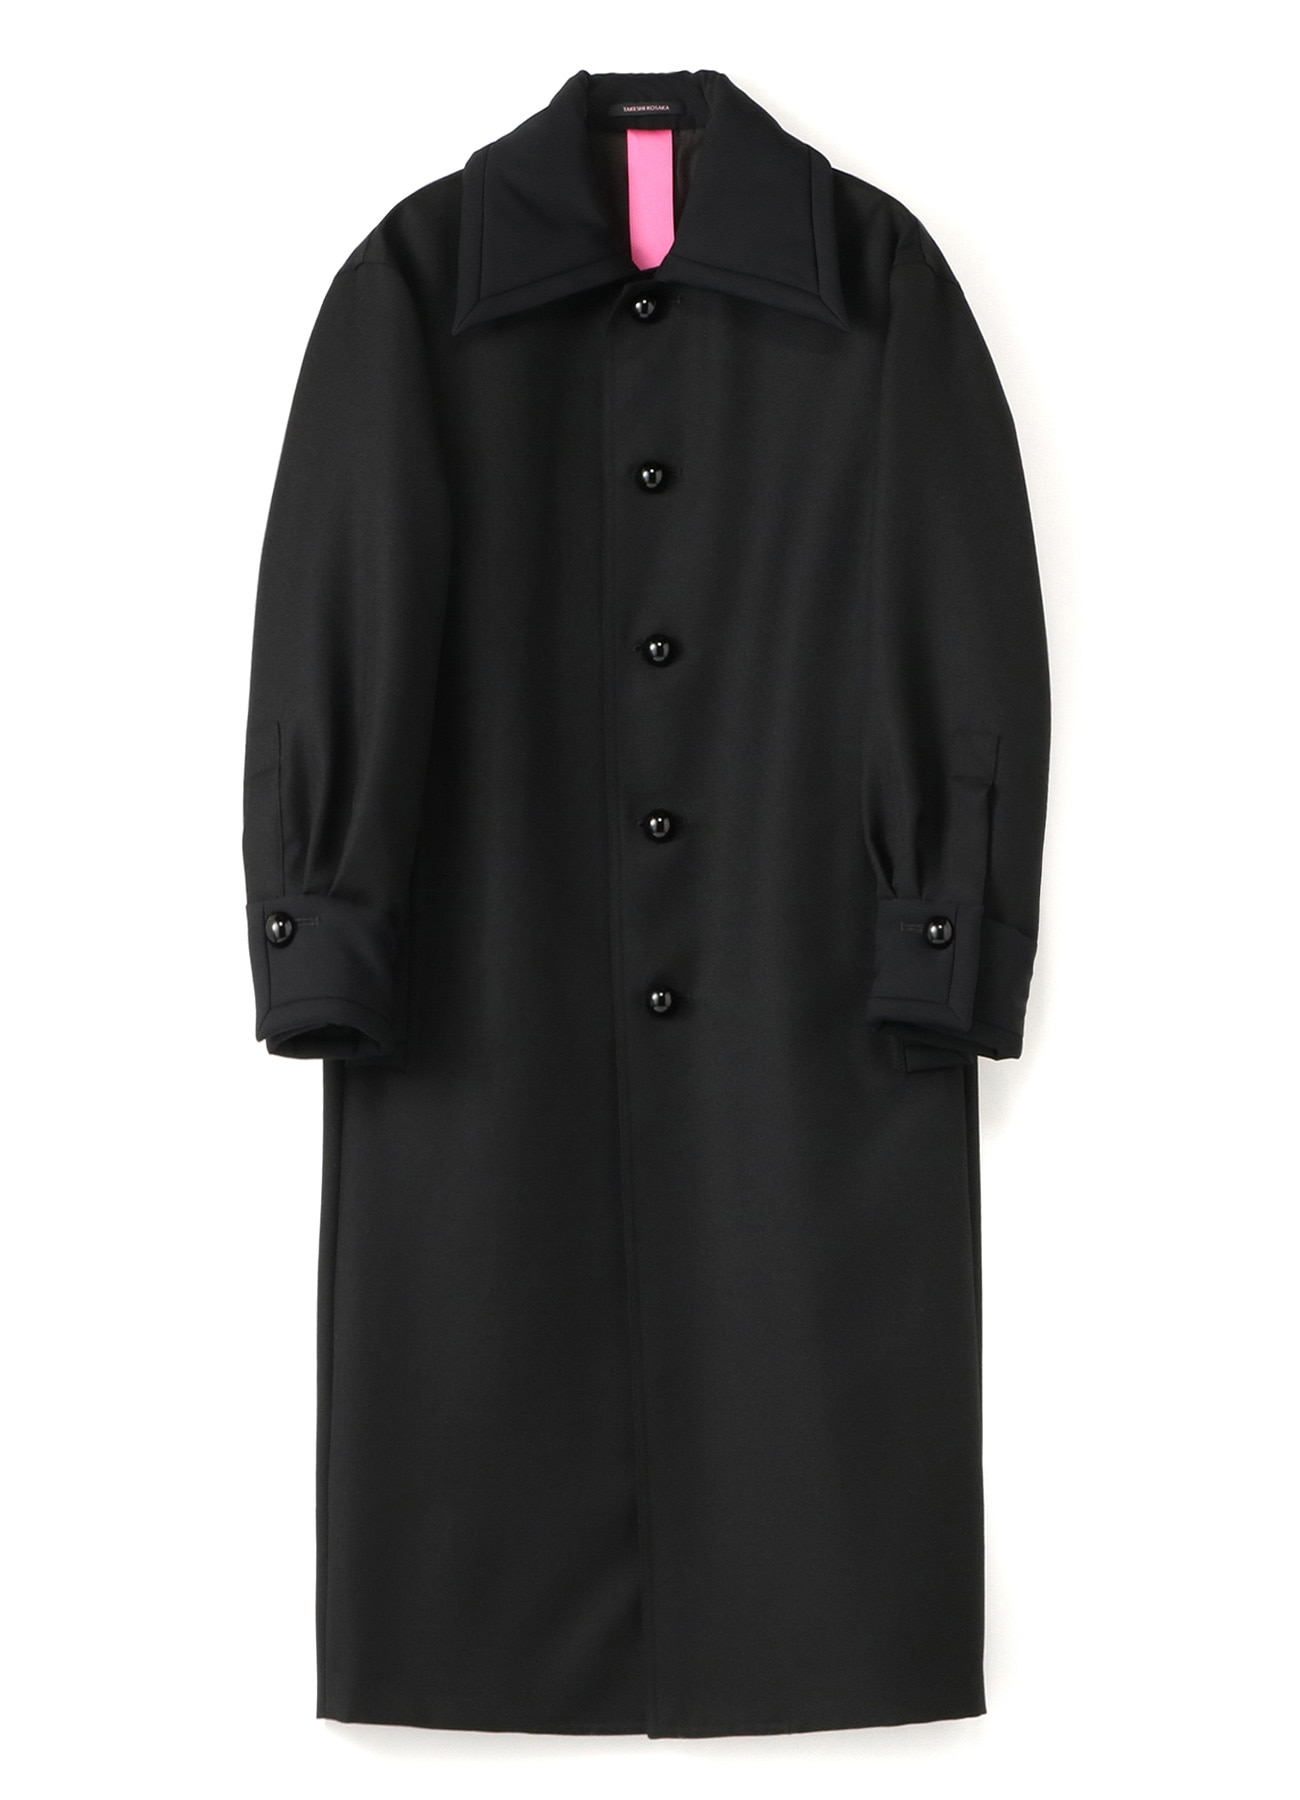 WOOL HARD SERGE INSULATED PARTS COAT